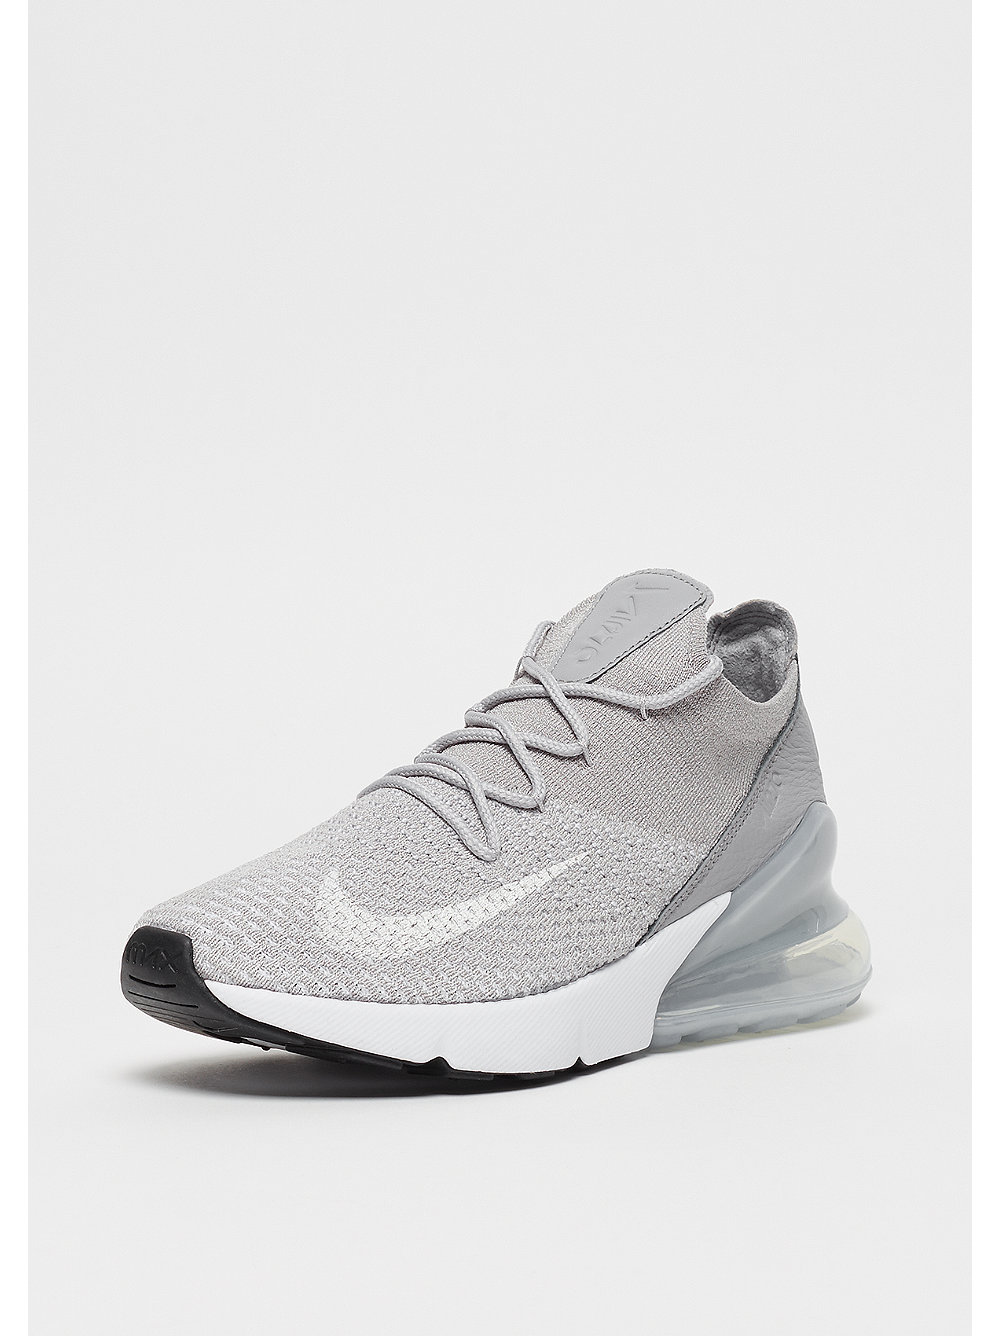 competitive price 24a4d 15f78 Schuhe NIKE - Air Max 270 Flyknit AH6803 002 Atmosphere Grey White